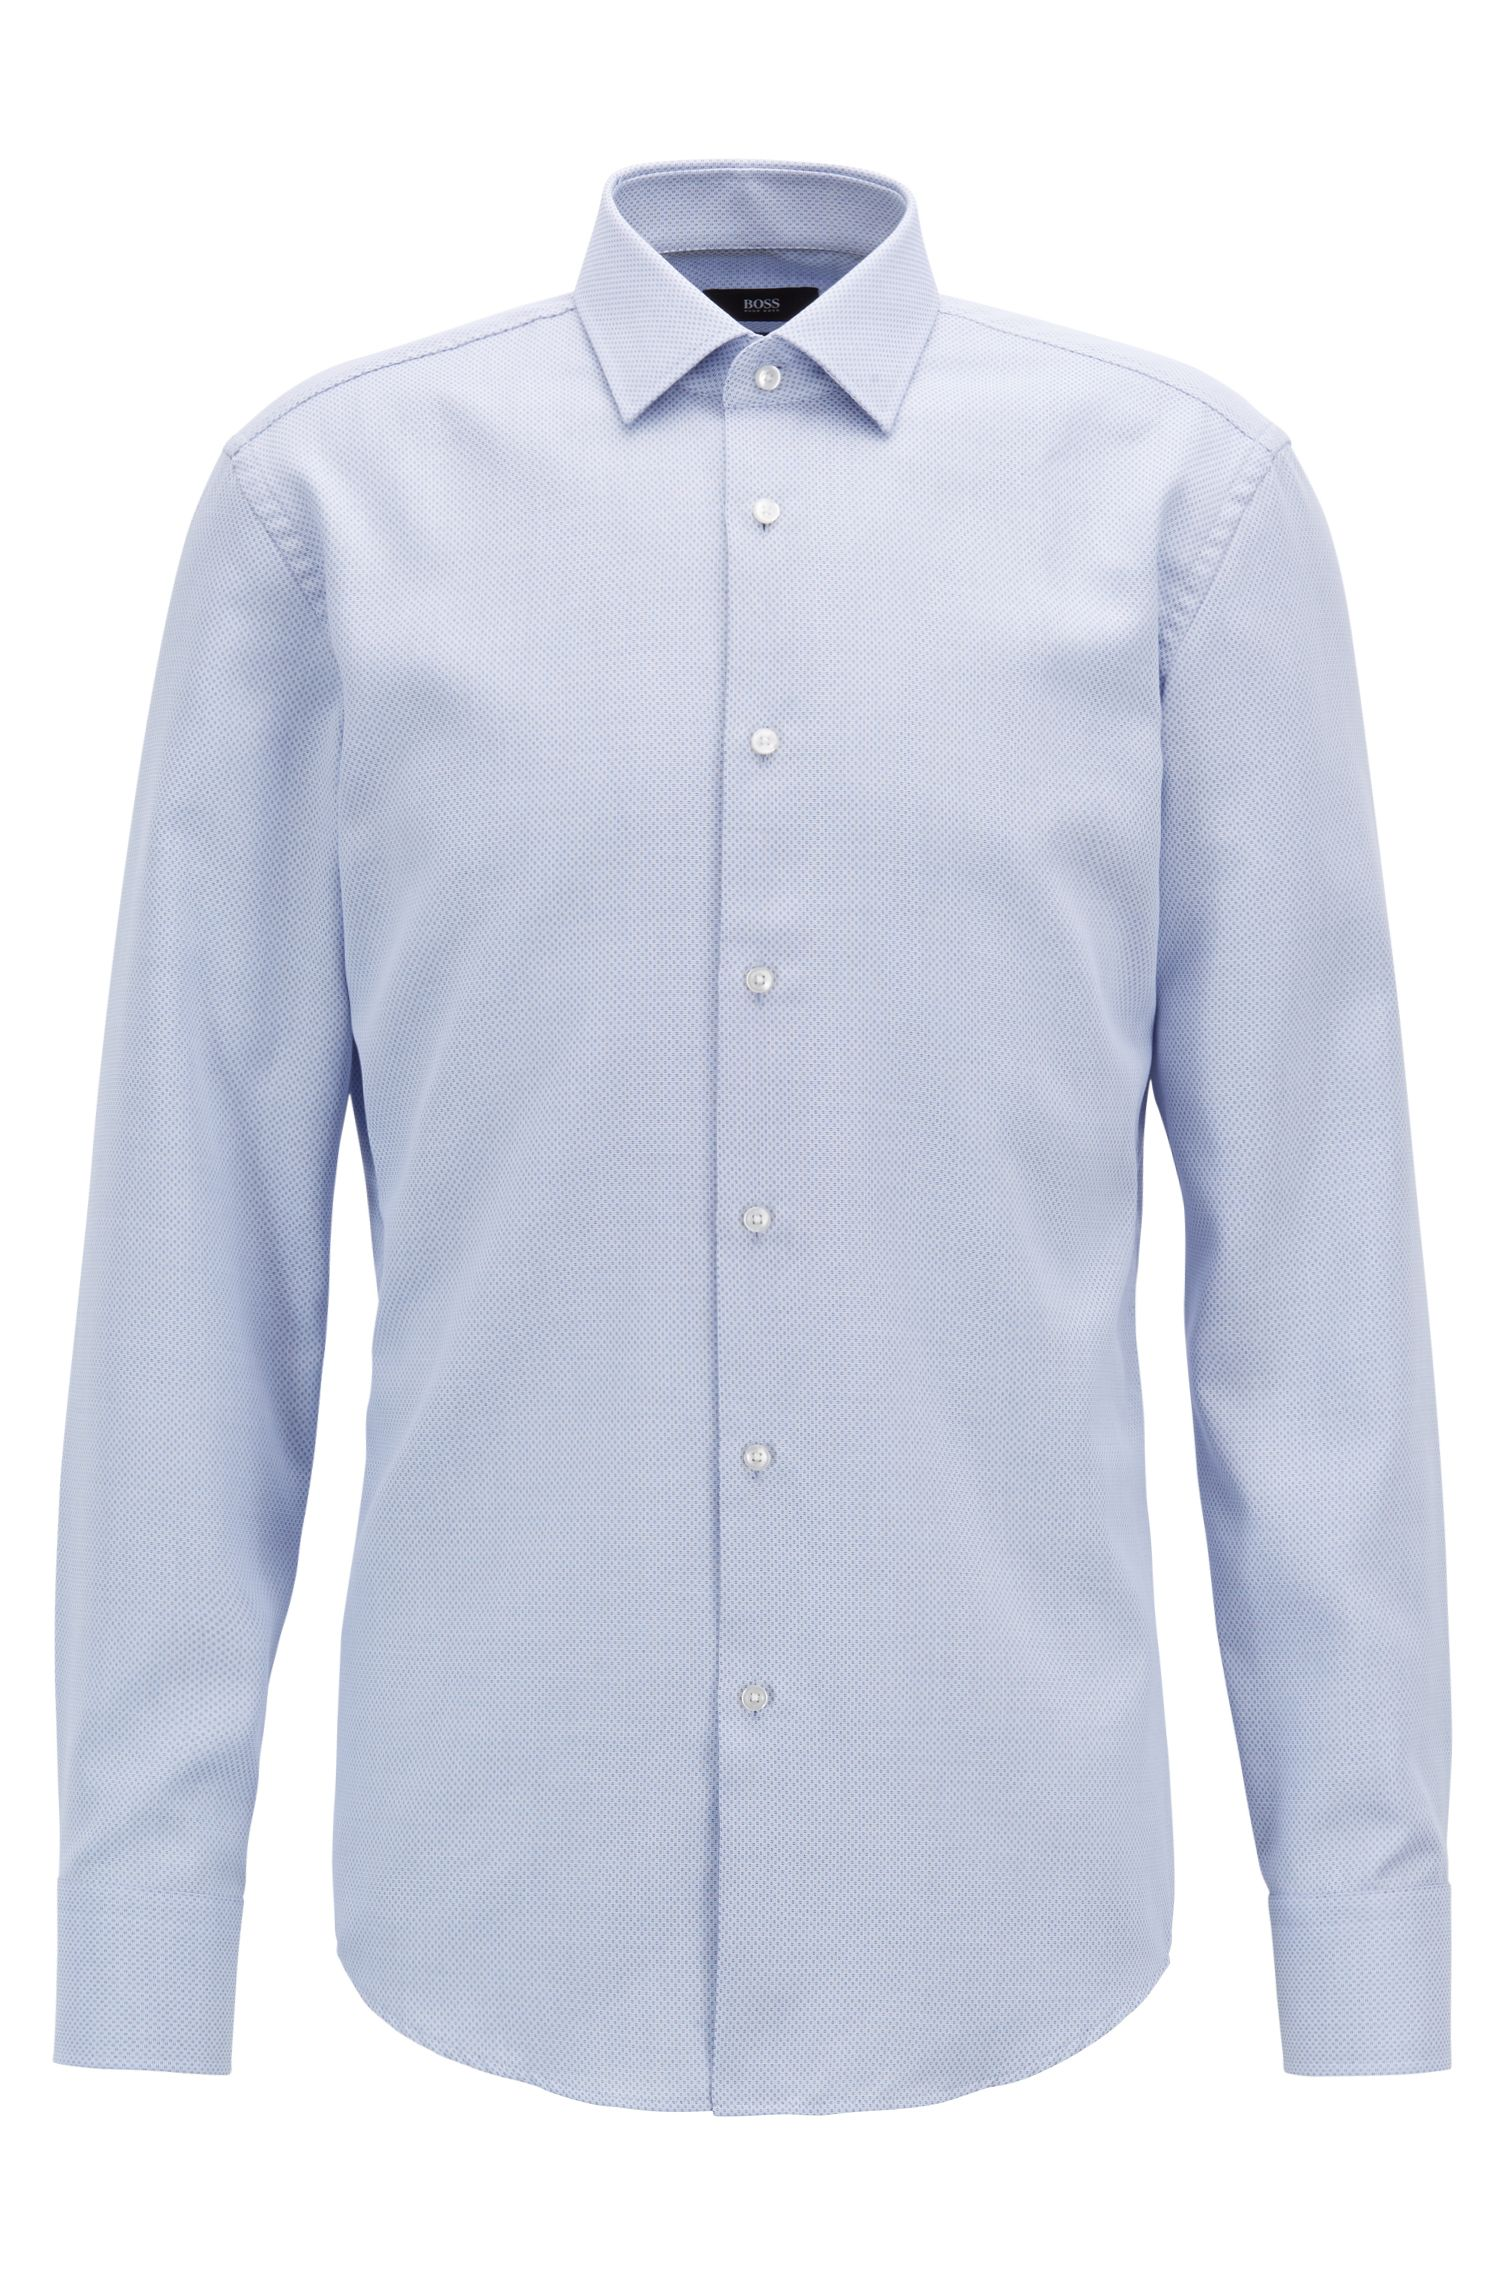 Hugo Boss - Slim-fit shirt in cotton with Aloe Vera finishing - 1